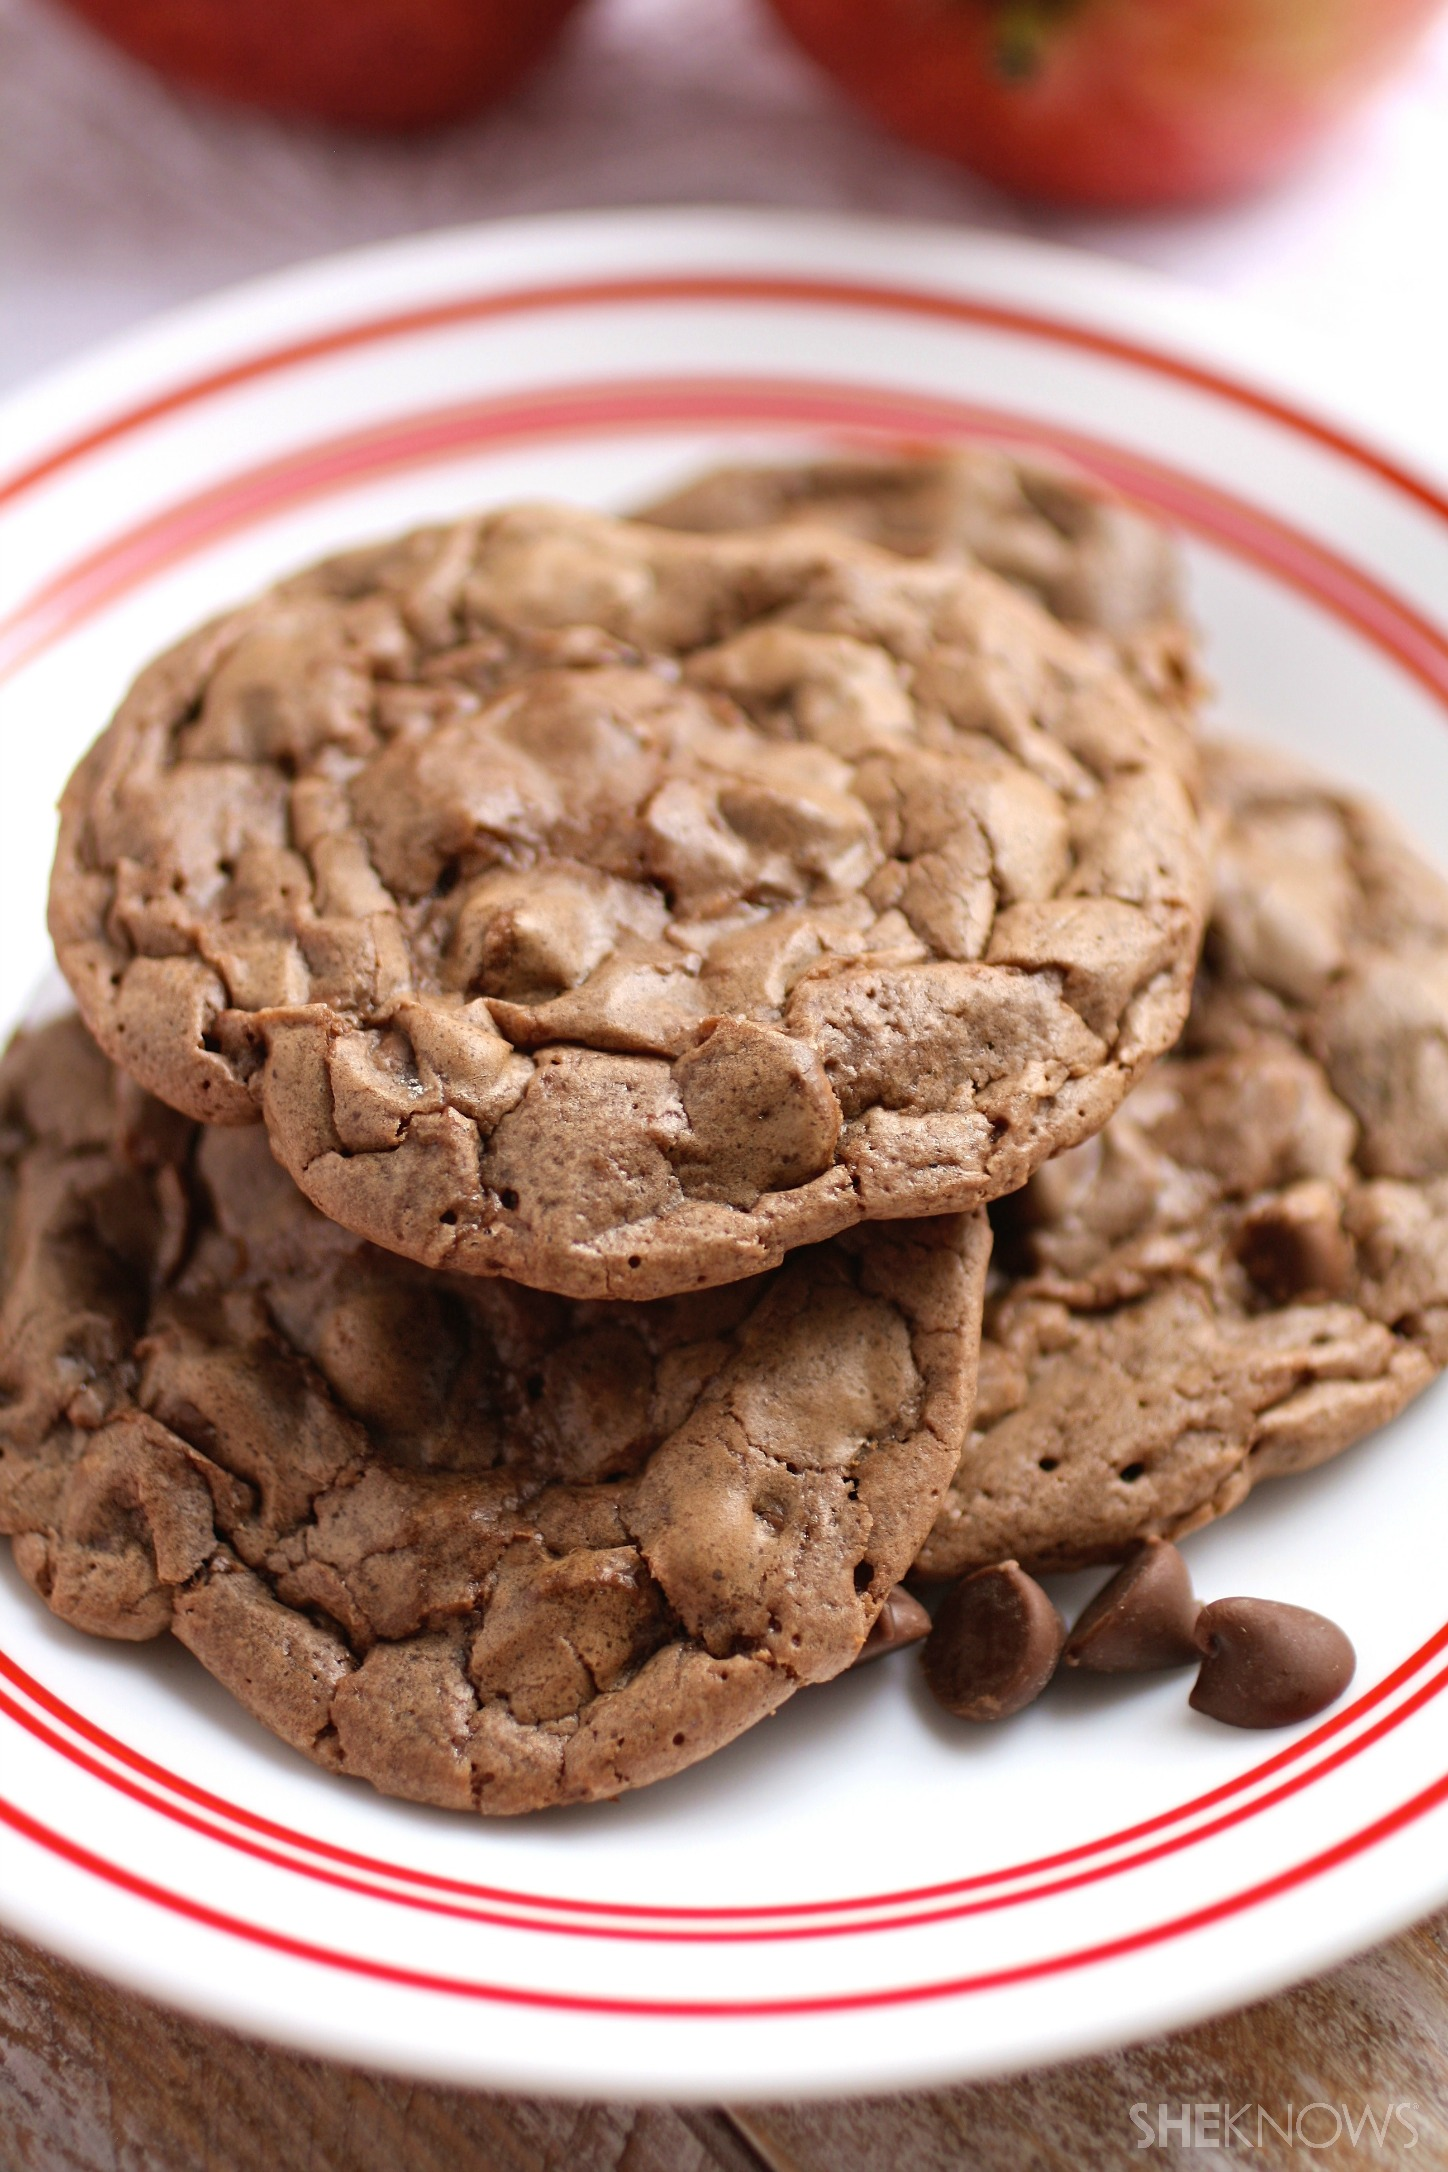 Offer up a plate of chocolate fudge cookies